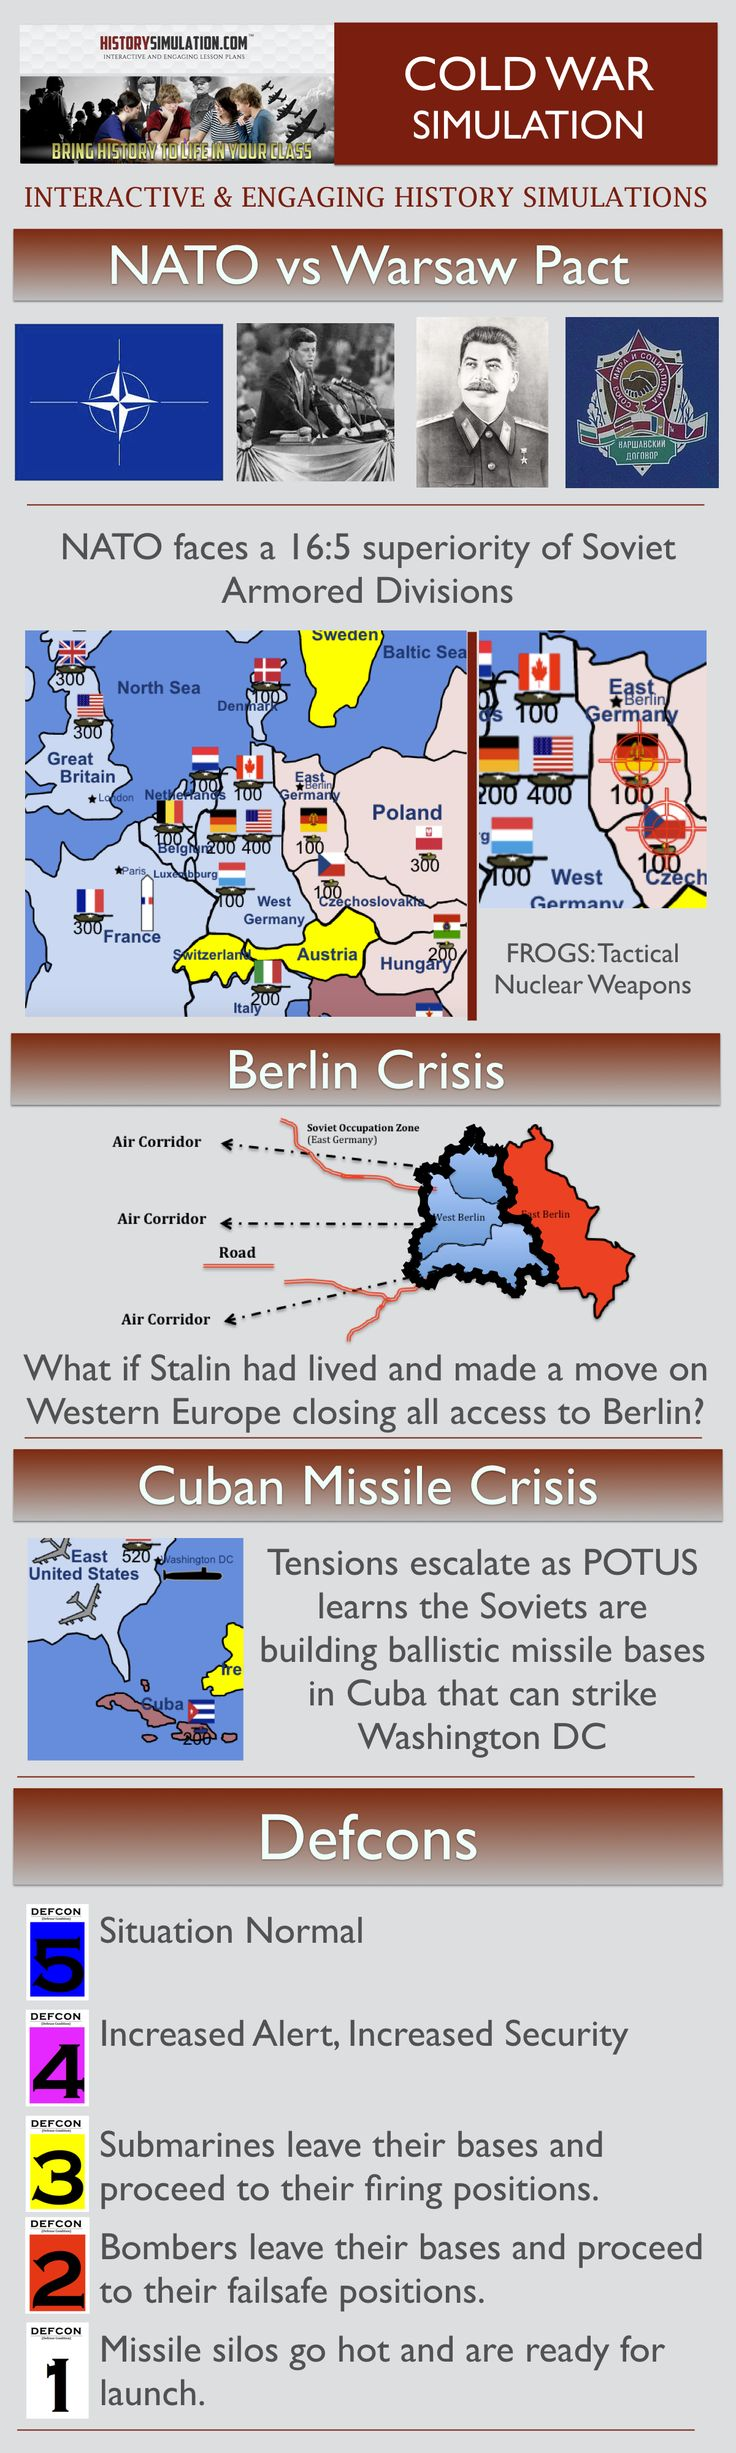 Cold War Simulation Activity  The Cold War Simulation is a hands on, interactive lesson plan that incorporates critical thinking skills and problem solving skills.  Students will assume the roles of world leaders in 1962. This lesson plan is a compilation of Cold War events such as: The Cuban Missile Crisis and The Berlin Crisis. The Cold War Simulation features an aggressive Stalin-like Soviet leader who believes the U.S. and it's Allies don't have the guts to go all the way!